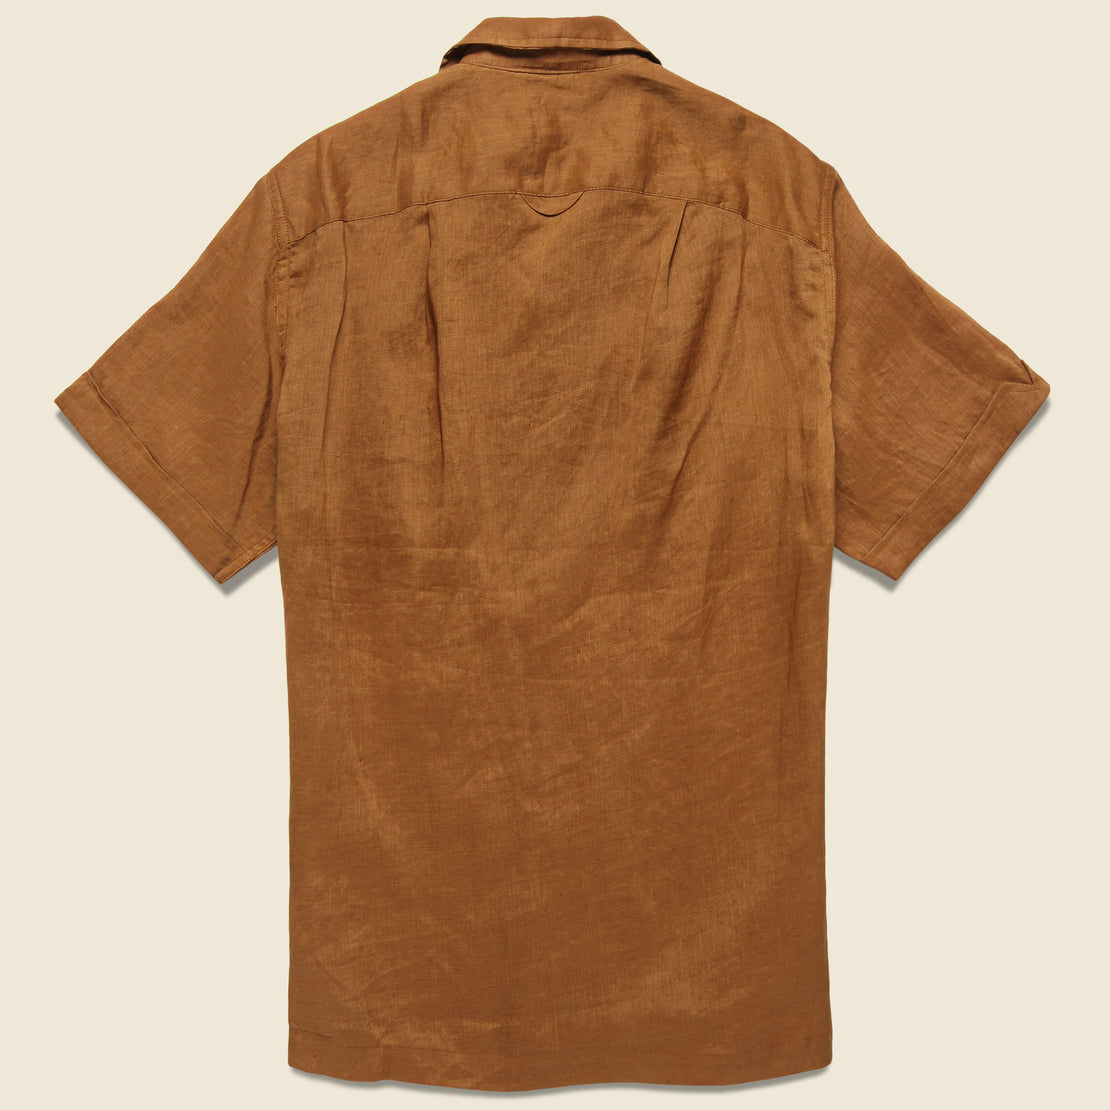 Vacation Shirt - Brown